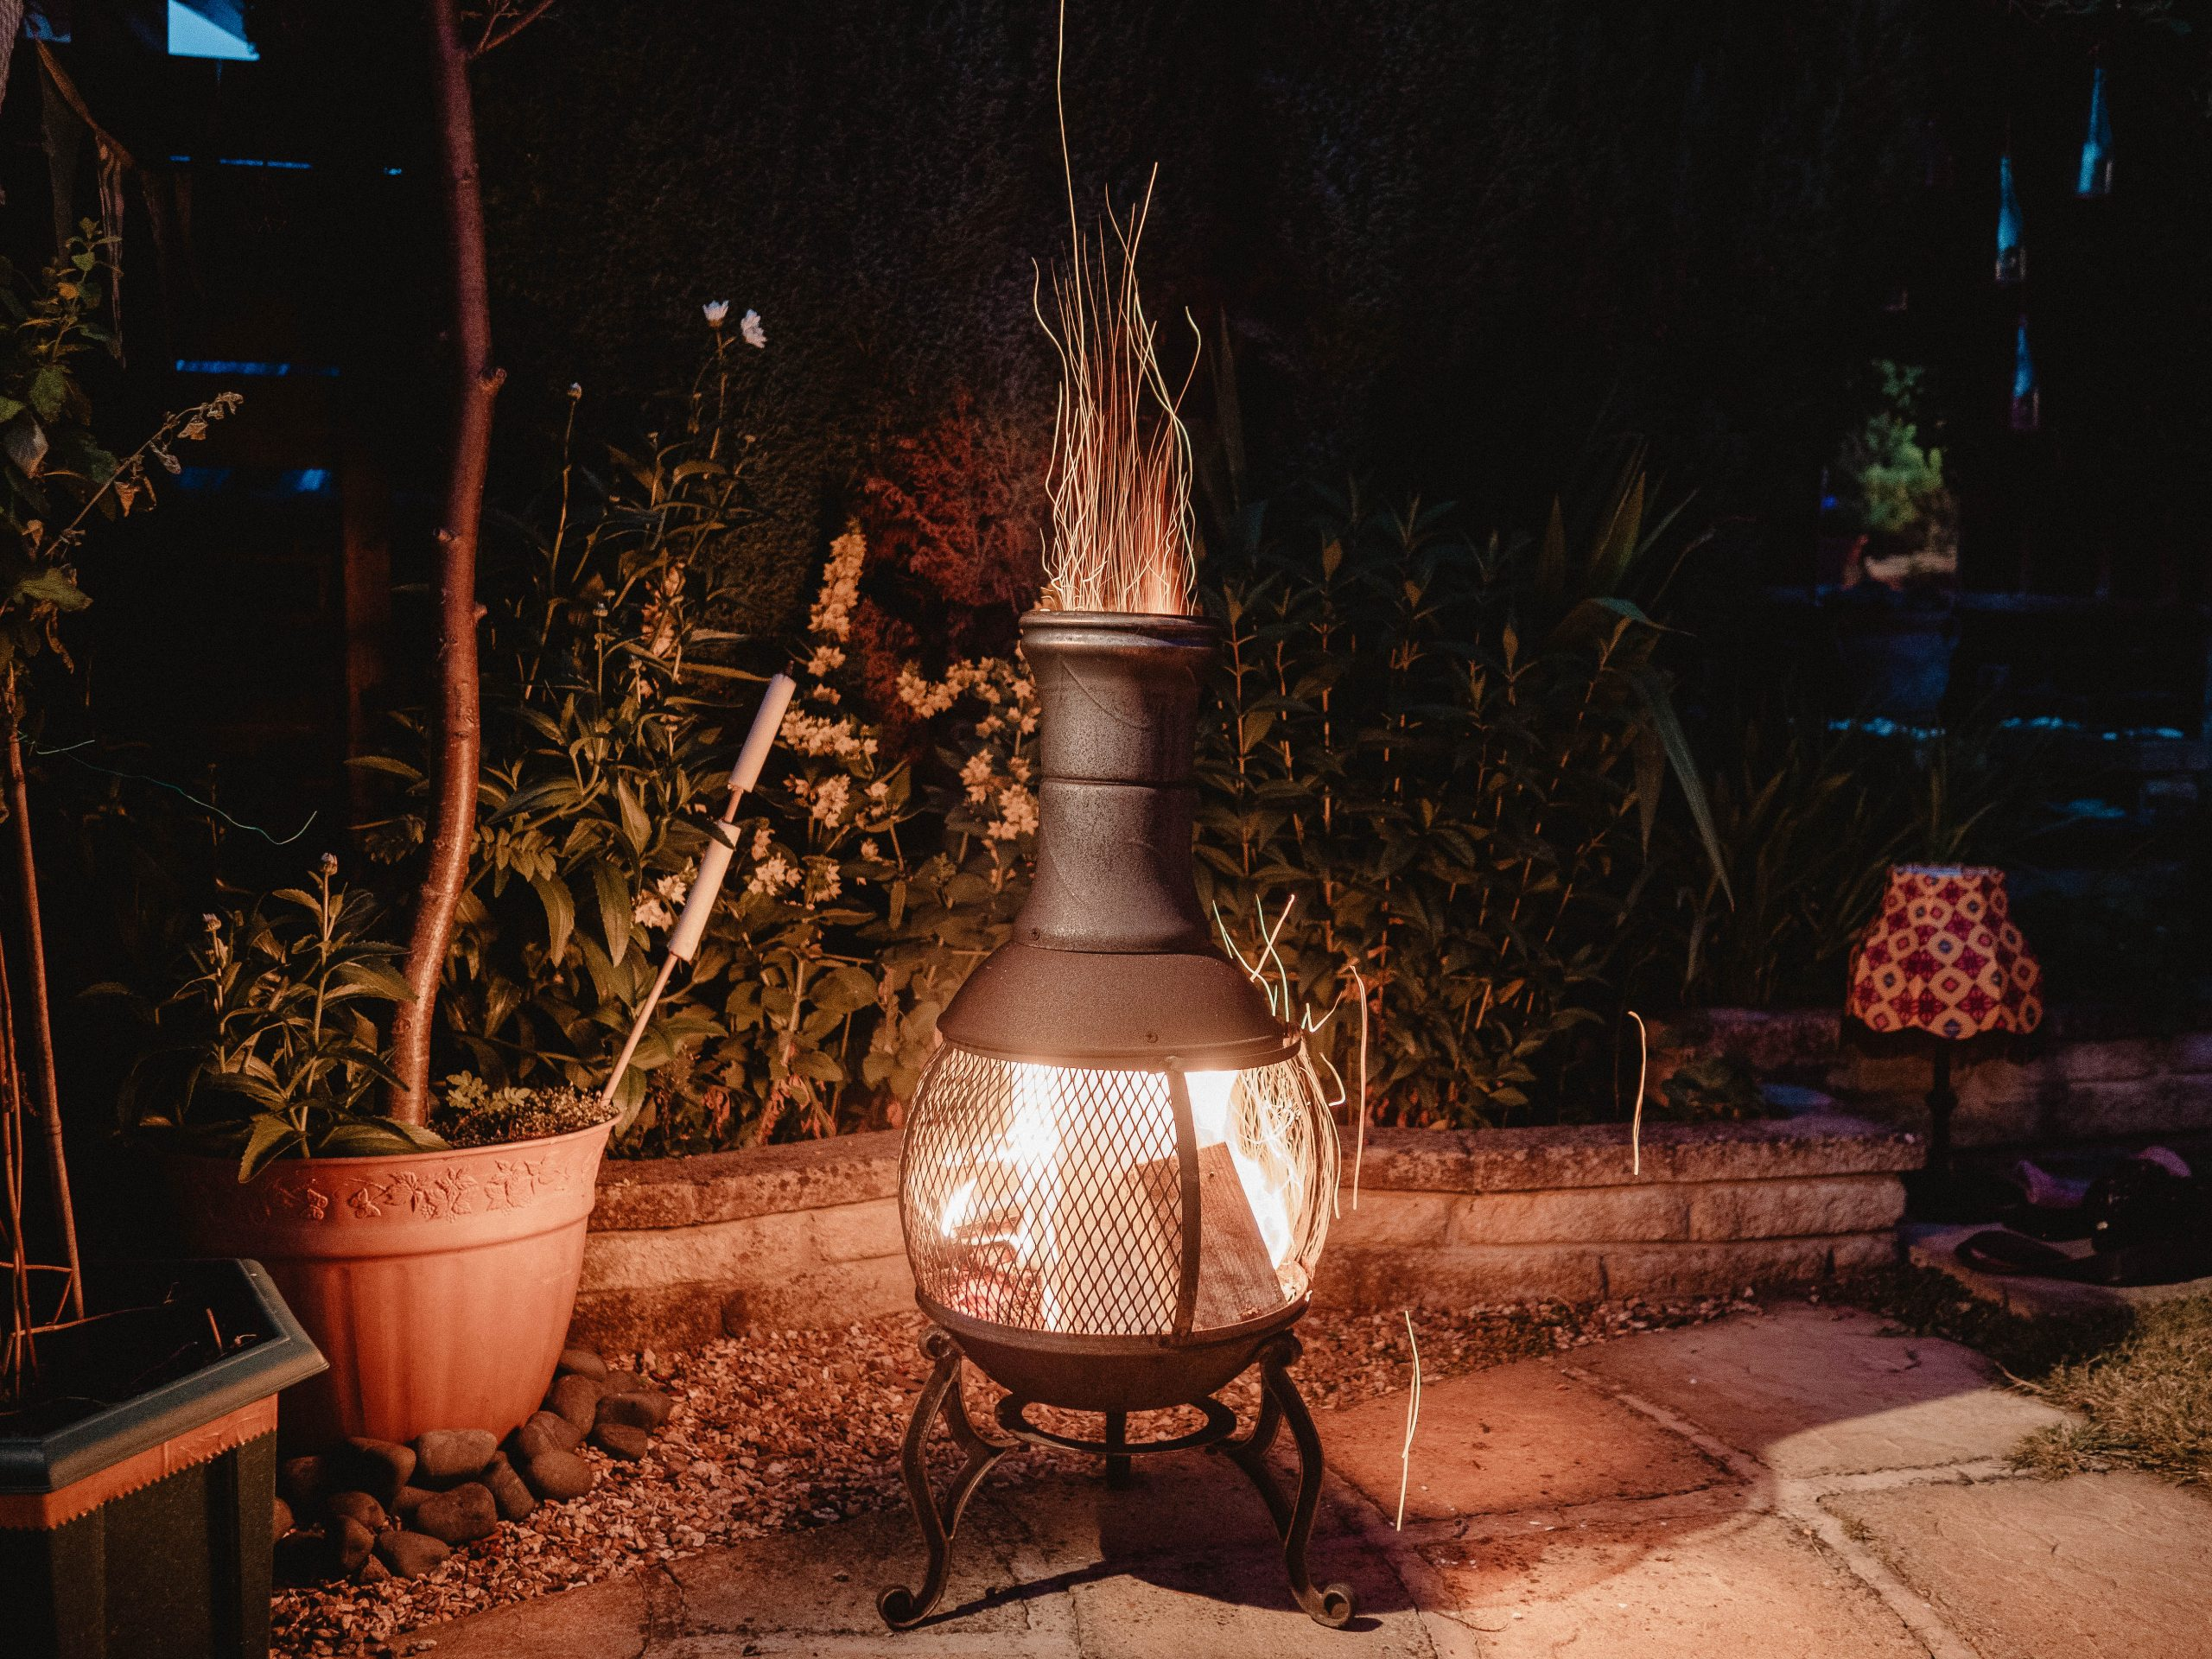 You can see an exterior fireplace.